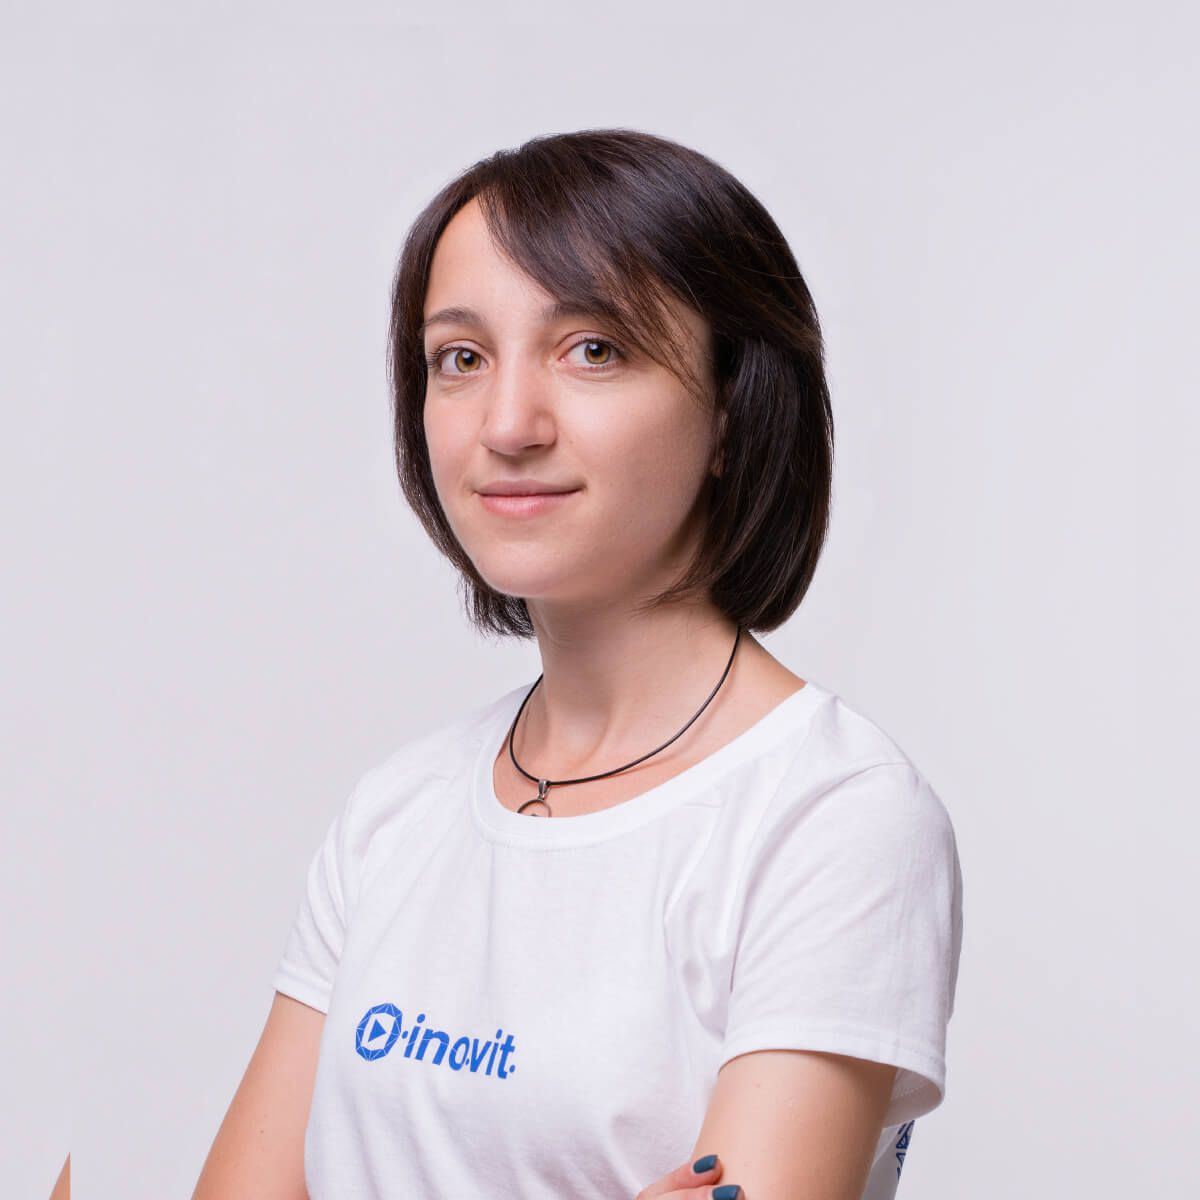 Maria I. Project Manager